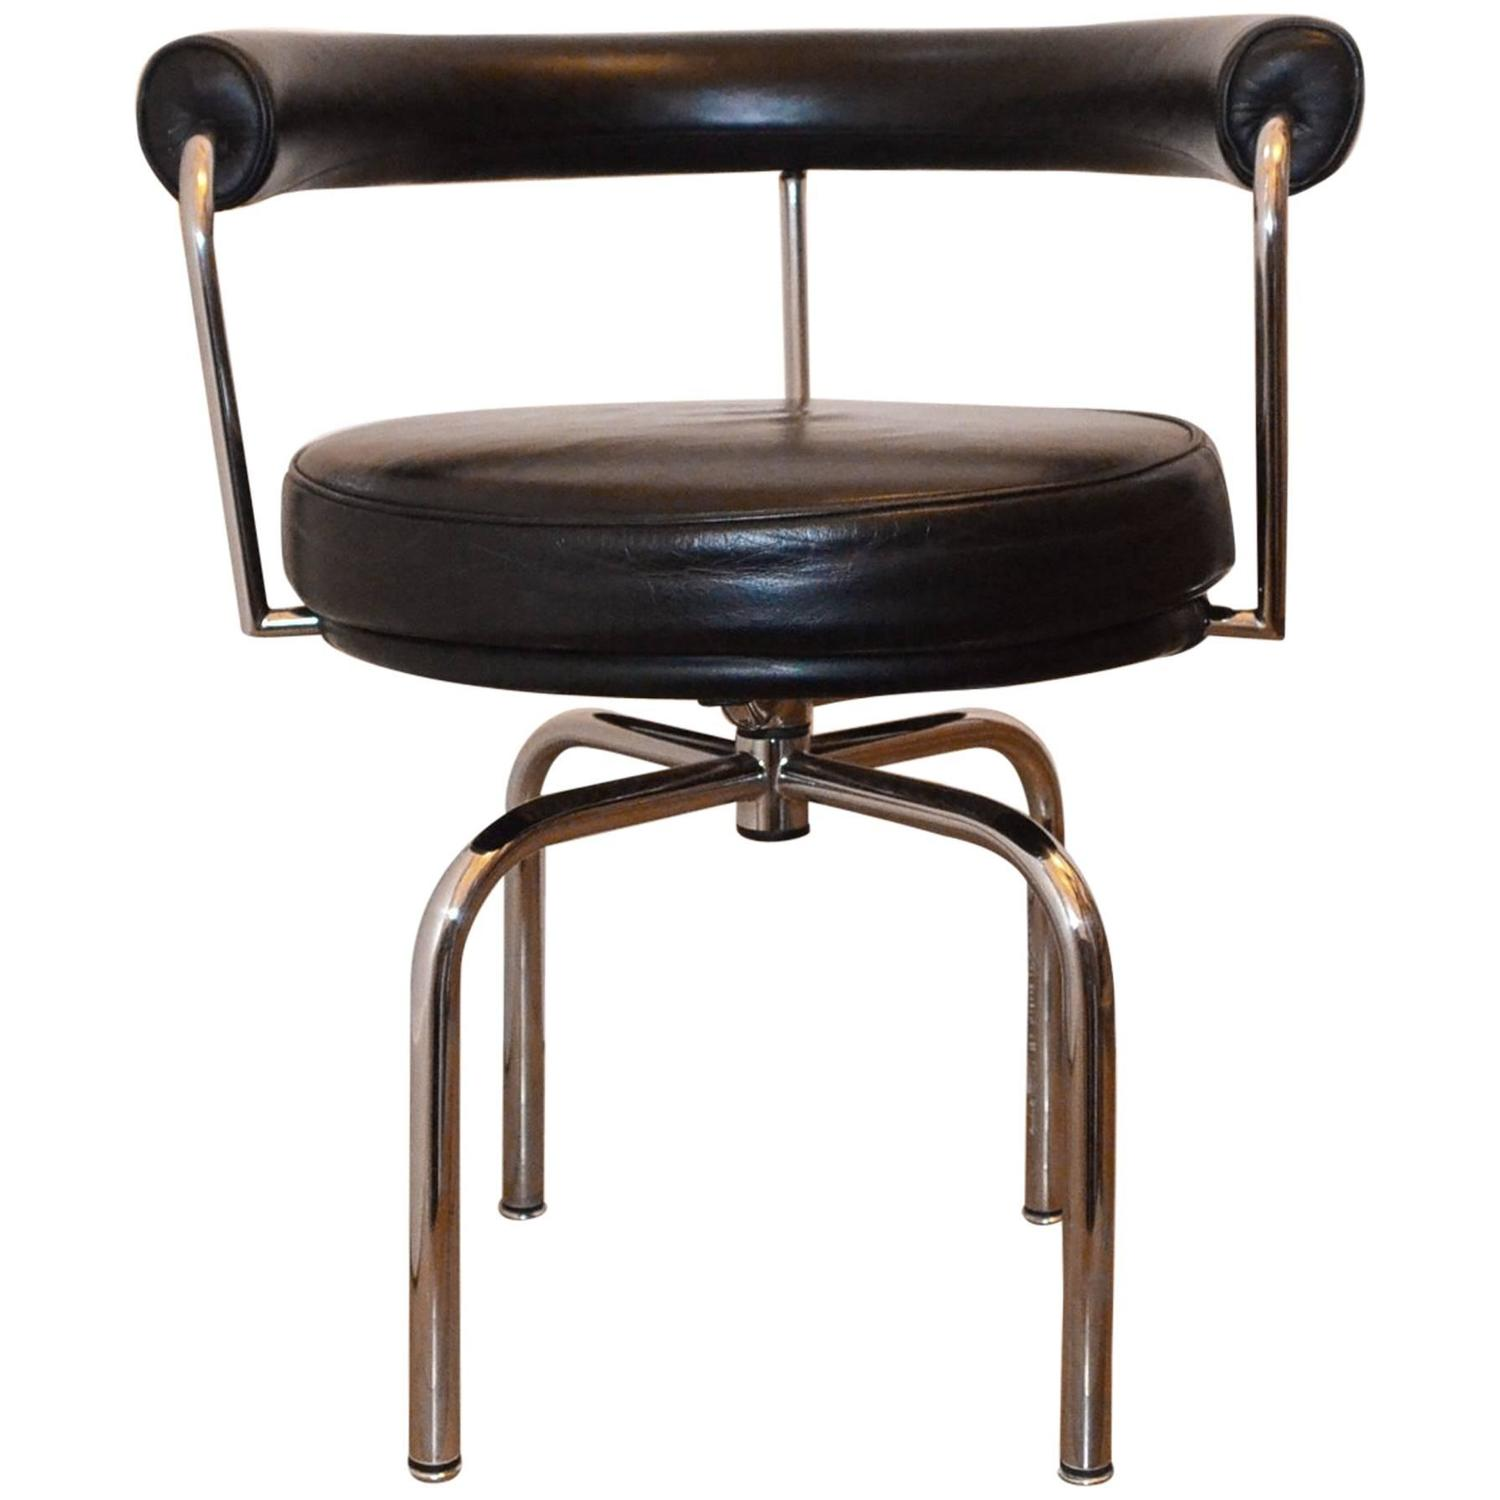 Black Leather Swivel Chair Cassina LC7 by Charlotte Perriand at